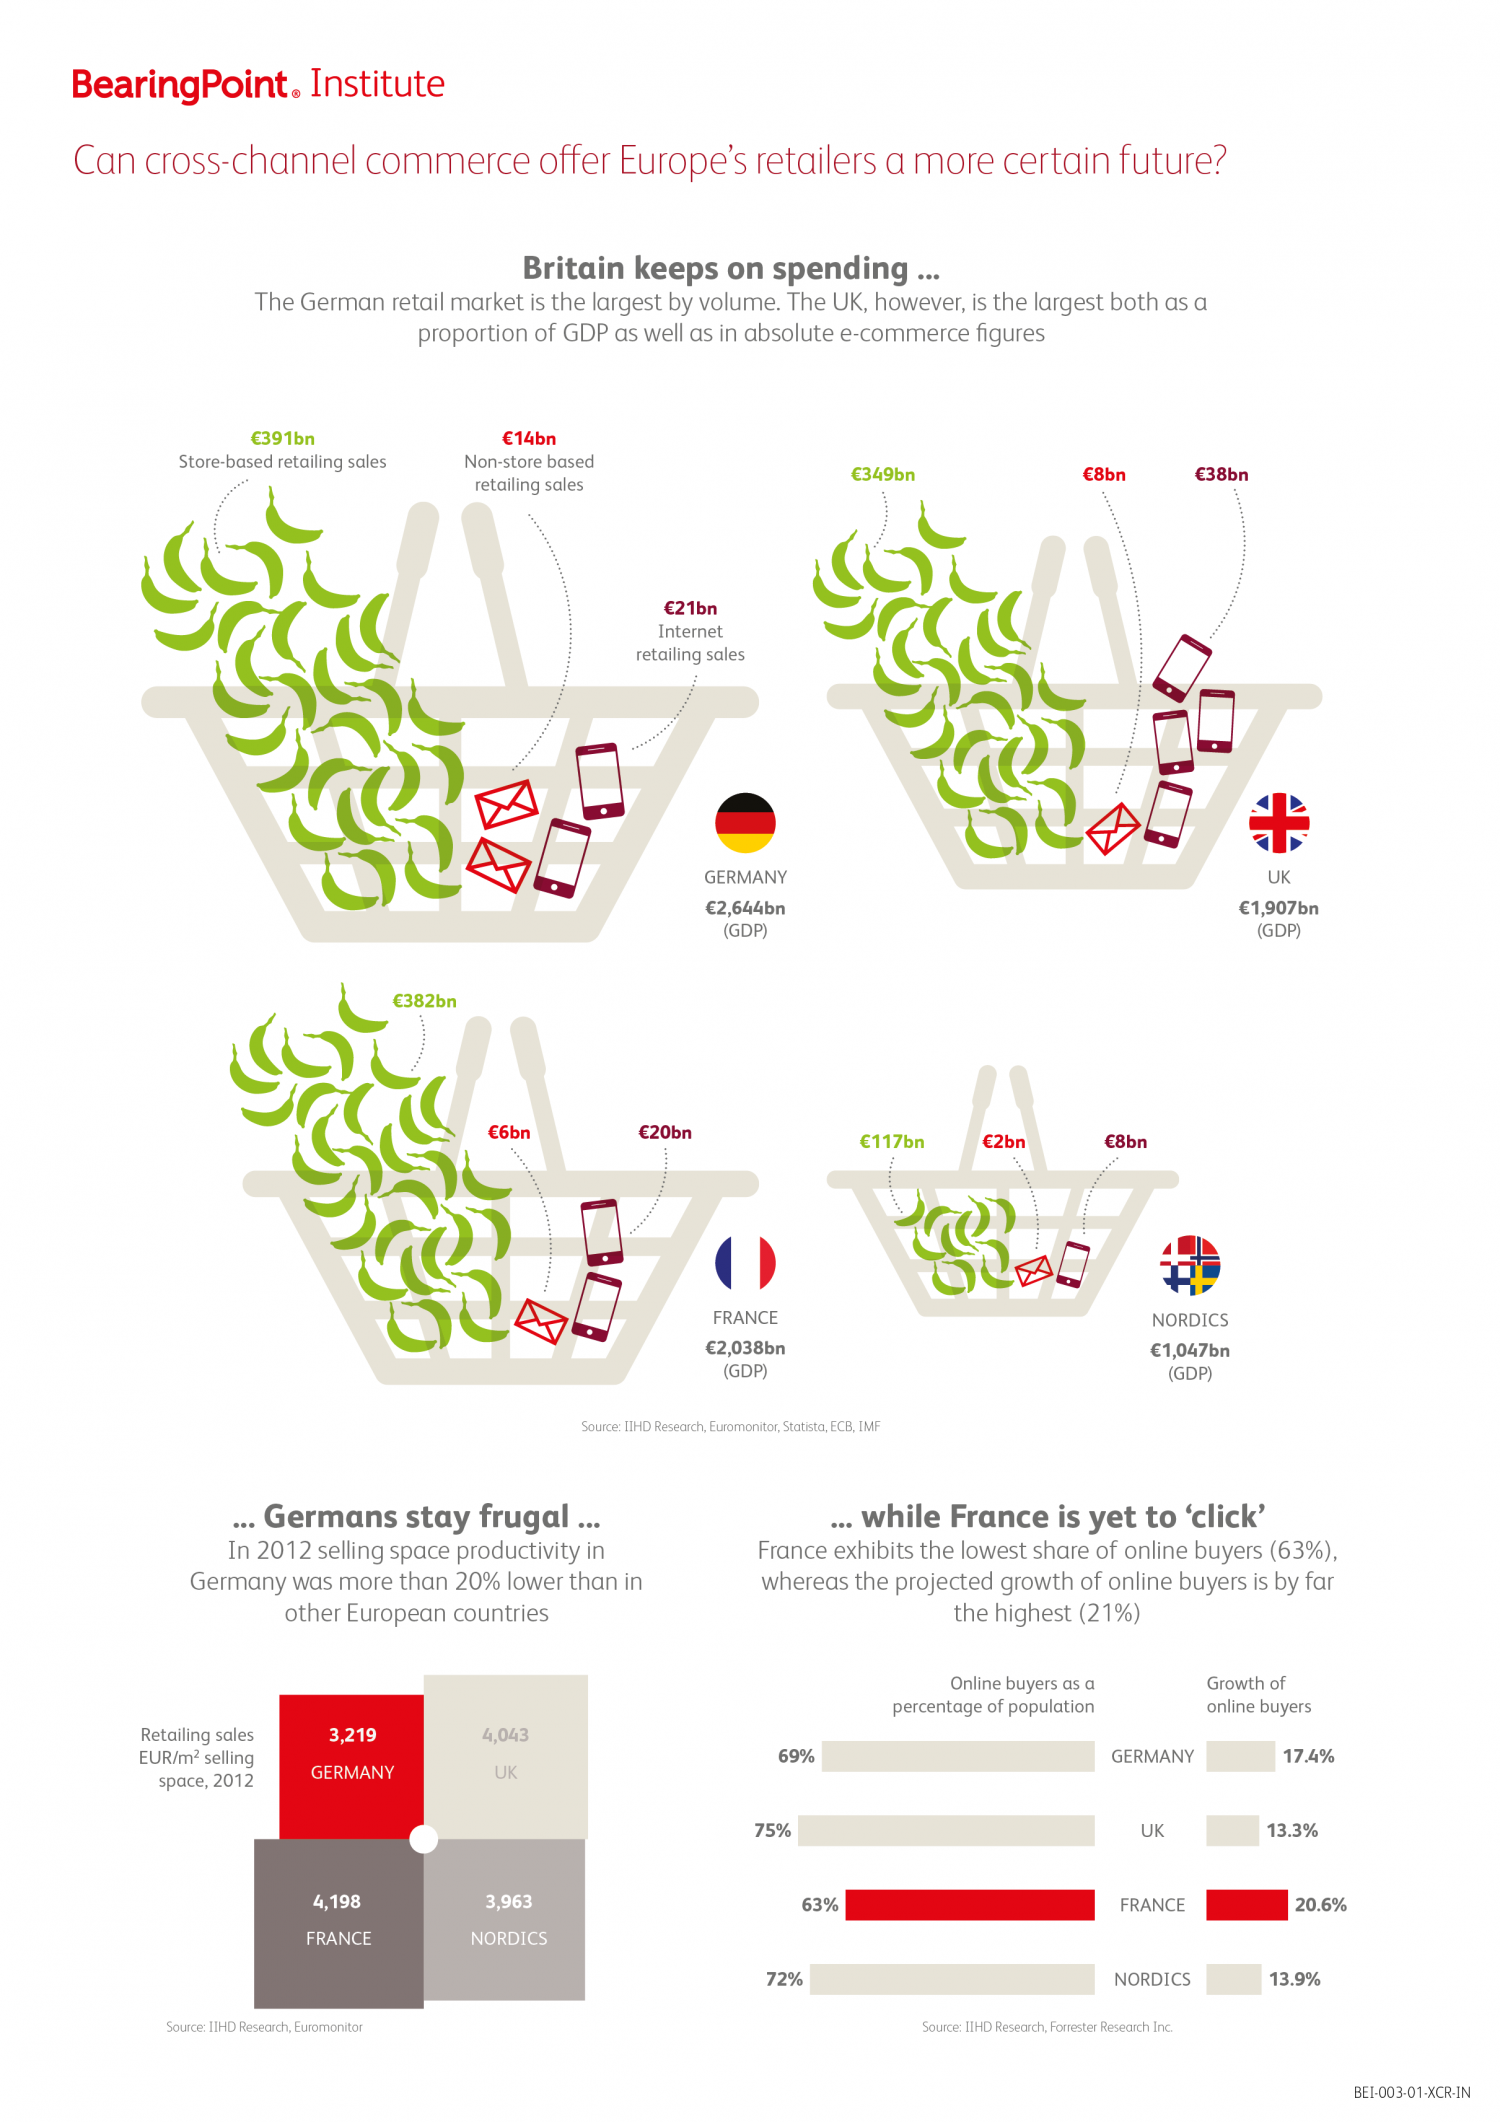 Can cross-channel offer Europe's retailers a more certain future? Infographic